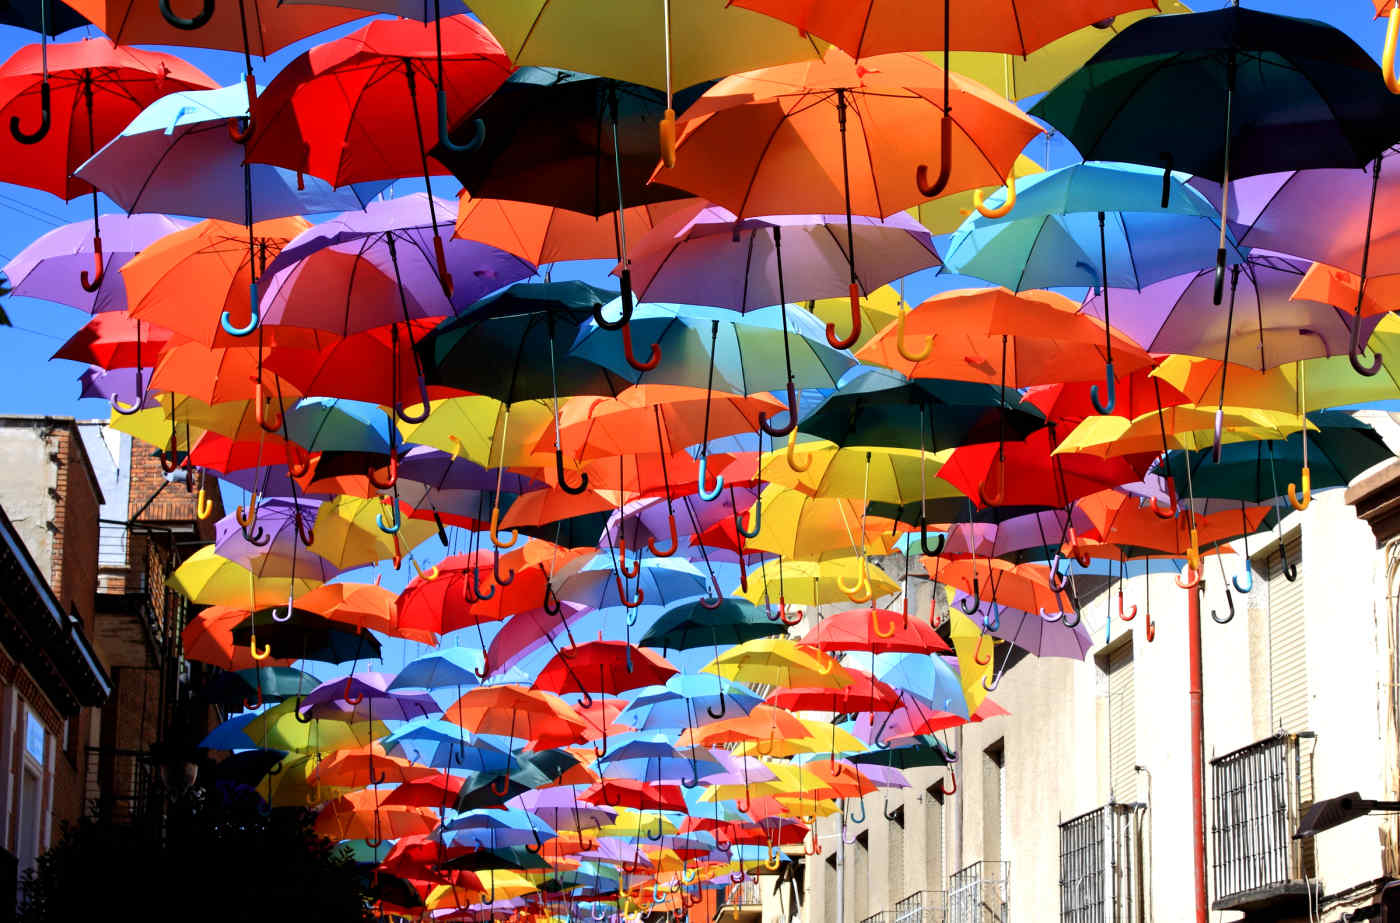 Street decorated with colored umbrellas in Madrid, Spain